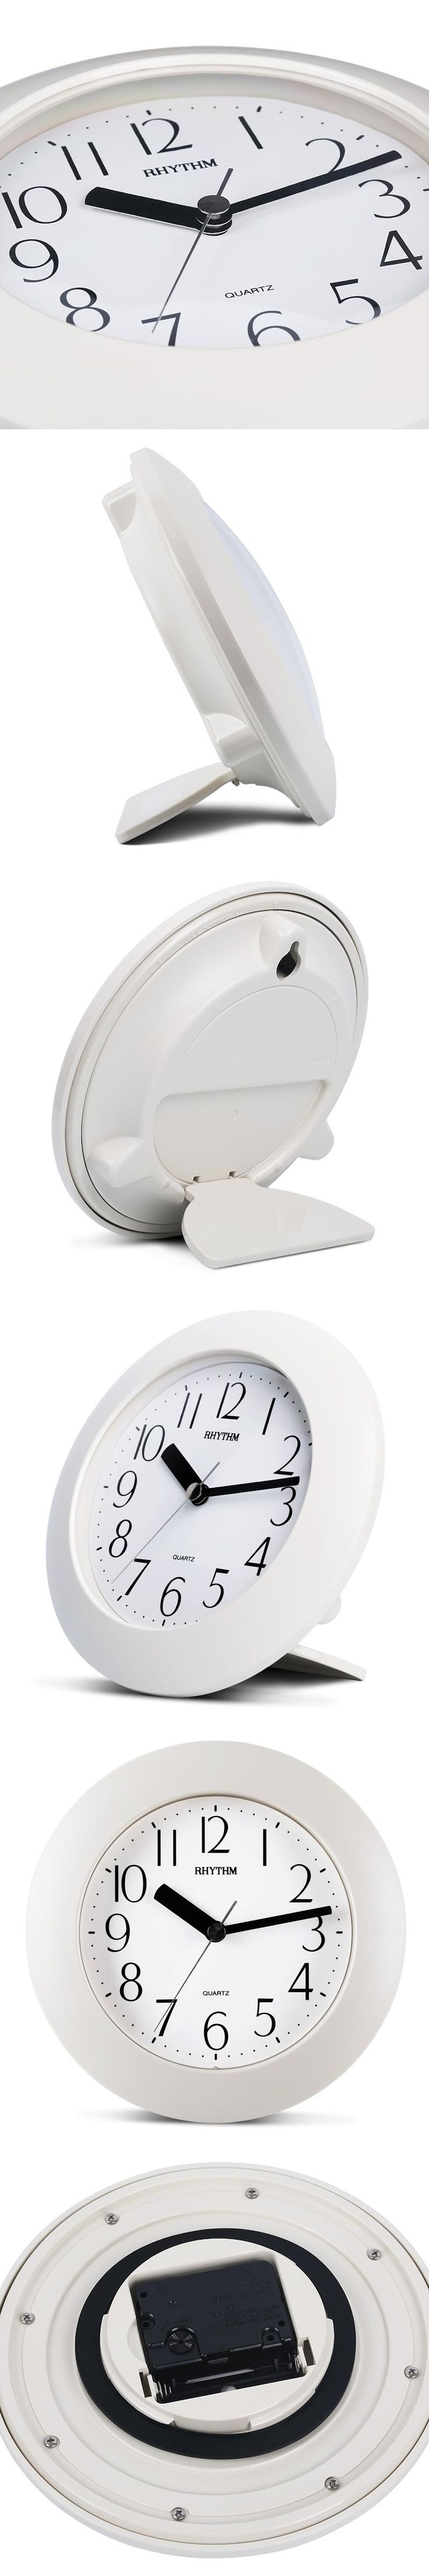 Best 25 bathroom wall clocks ideas on pinterest bathroom clocks simple bathroom wall clock creative home decor hd vapour resistant clocks with hookstand amipublicfo Image collections